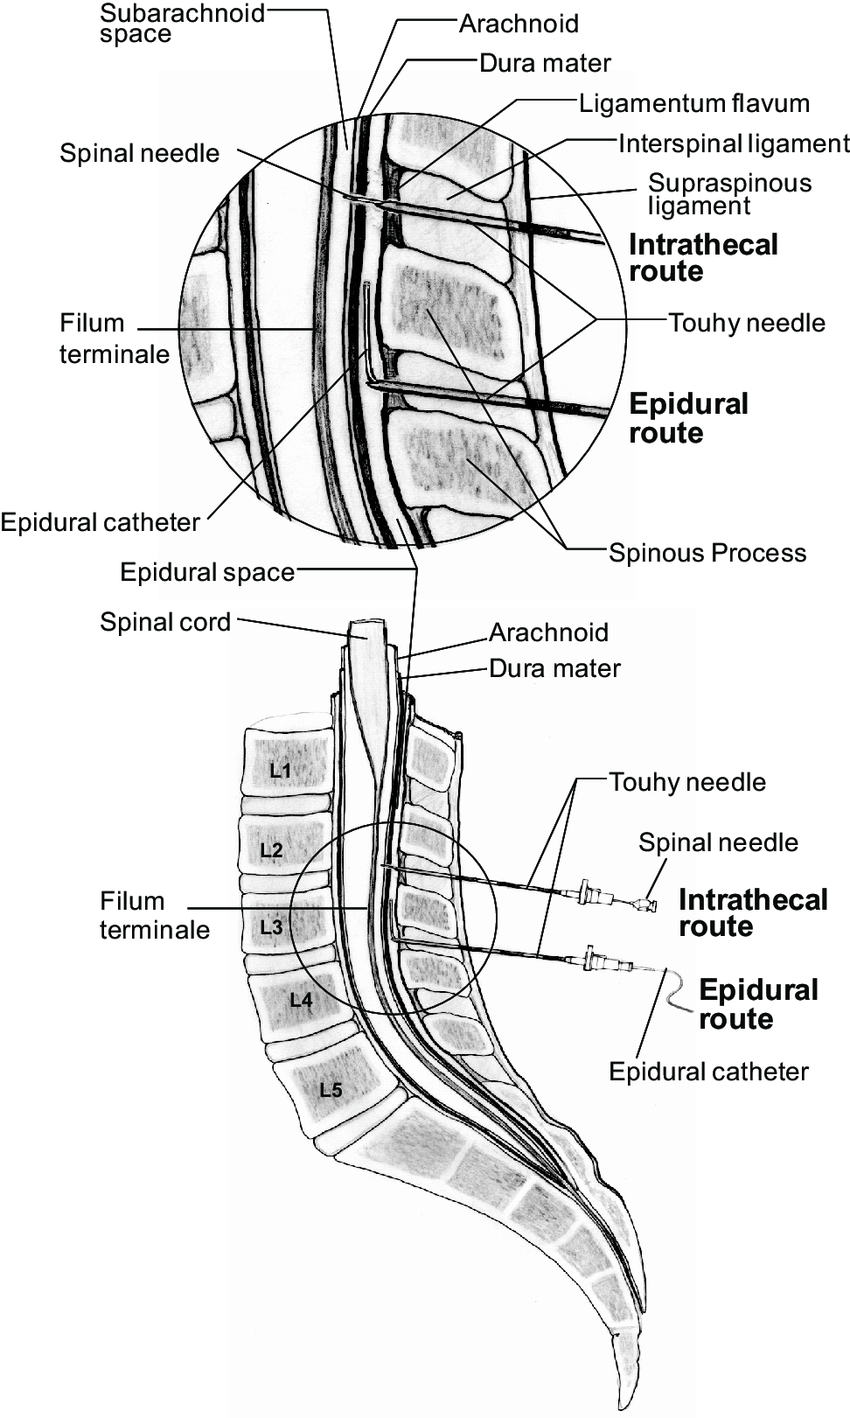 Gross anatomy of the spinal cord. Cox F (2009